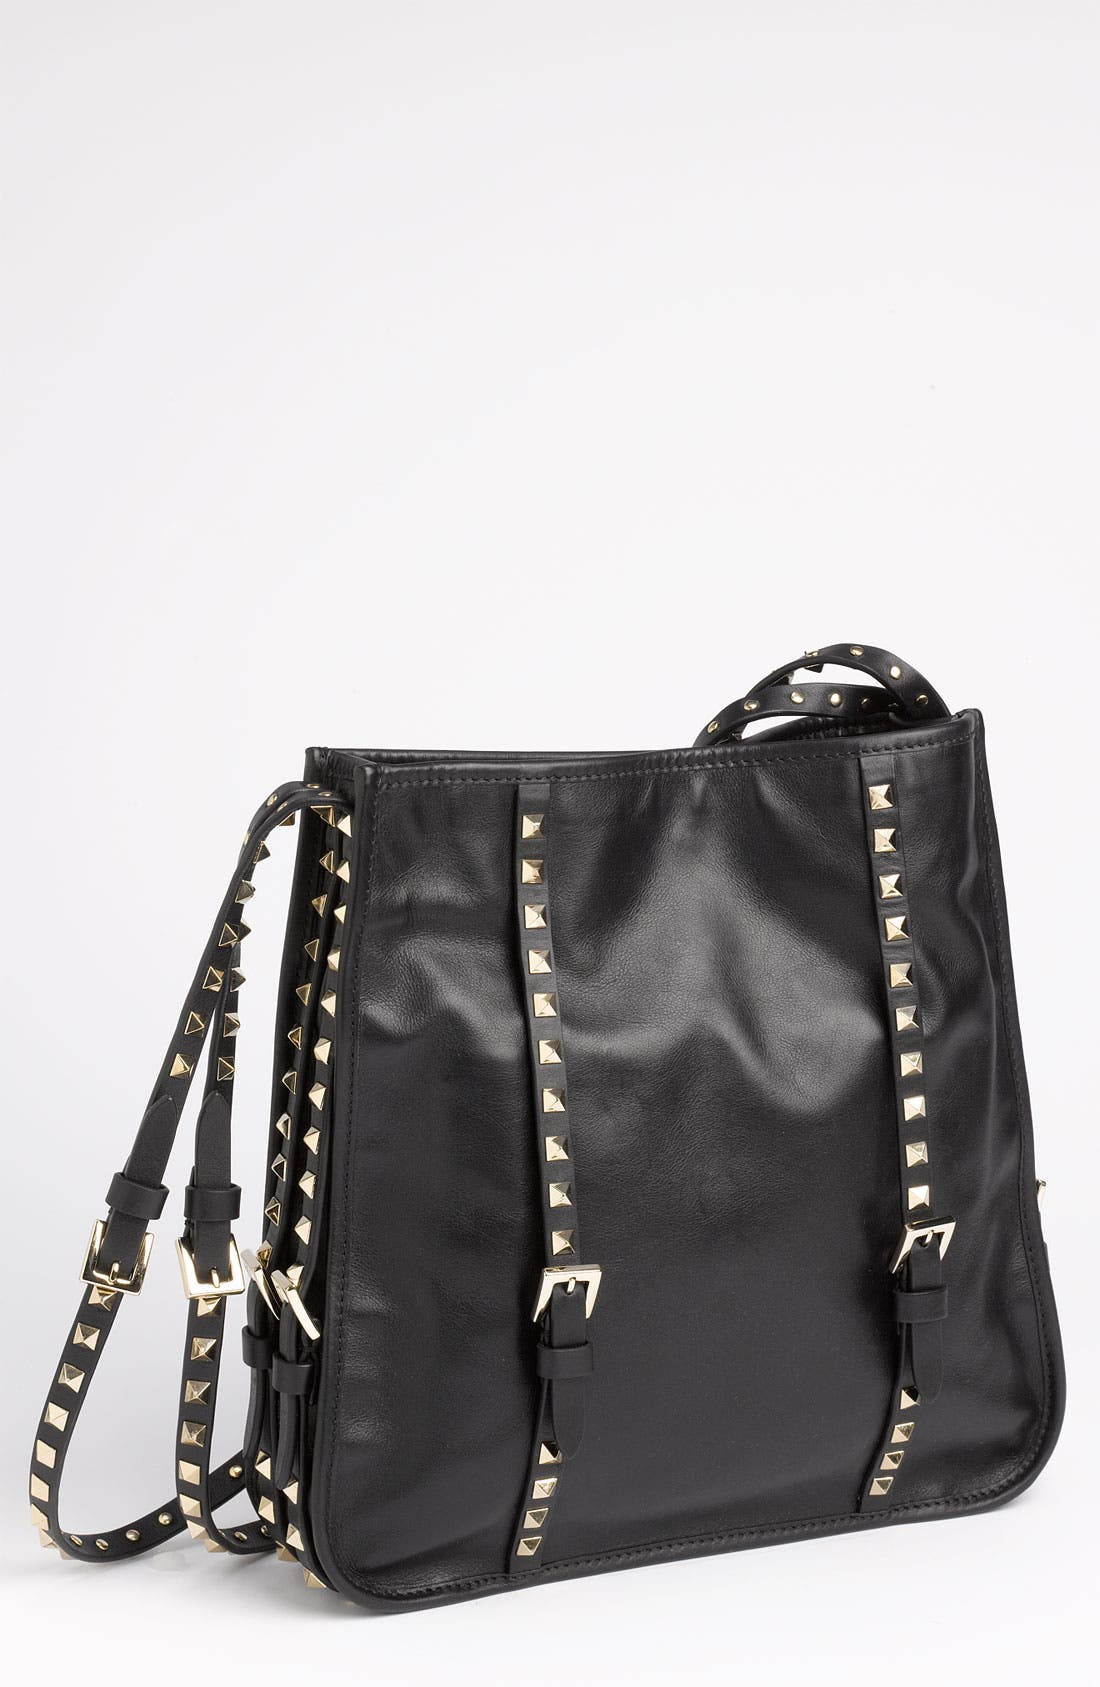 Alternate Image 1 Selected - Valentino 'Small' Leather Shopper Tote